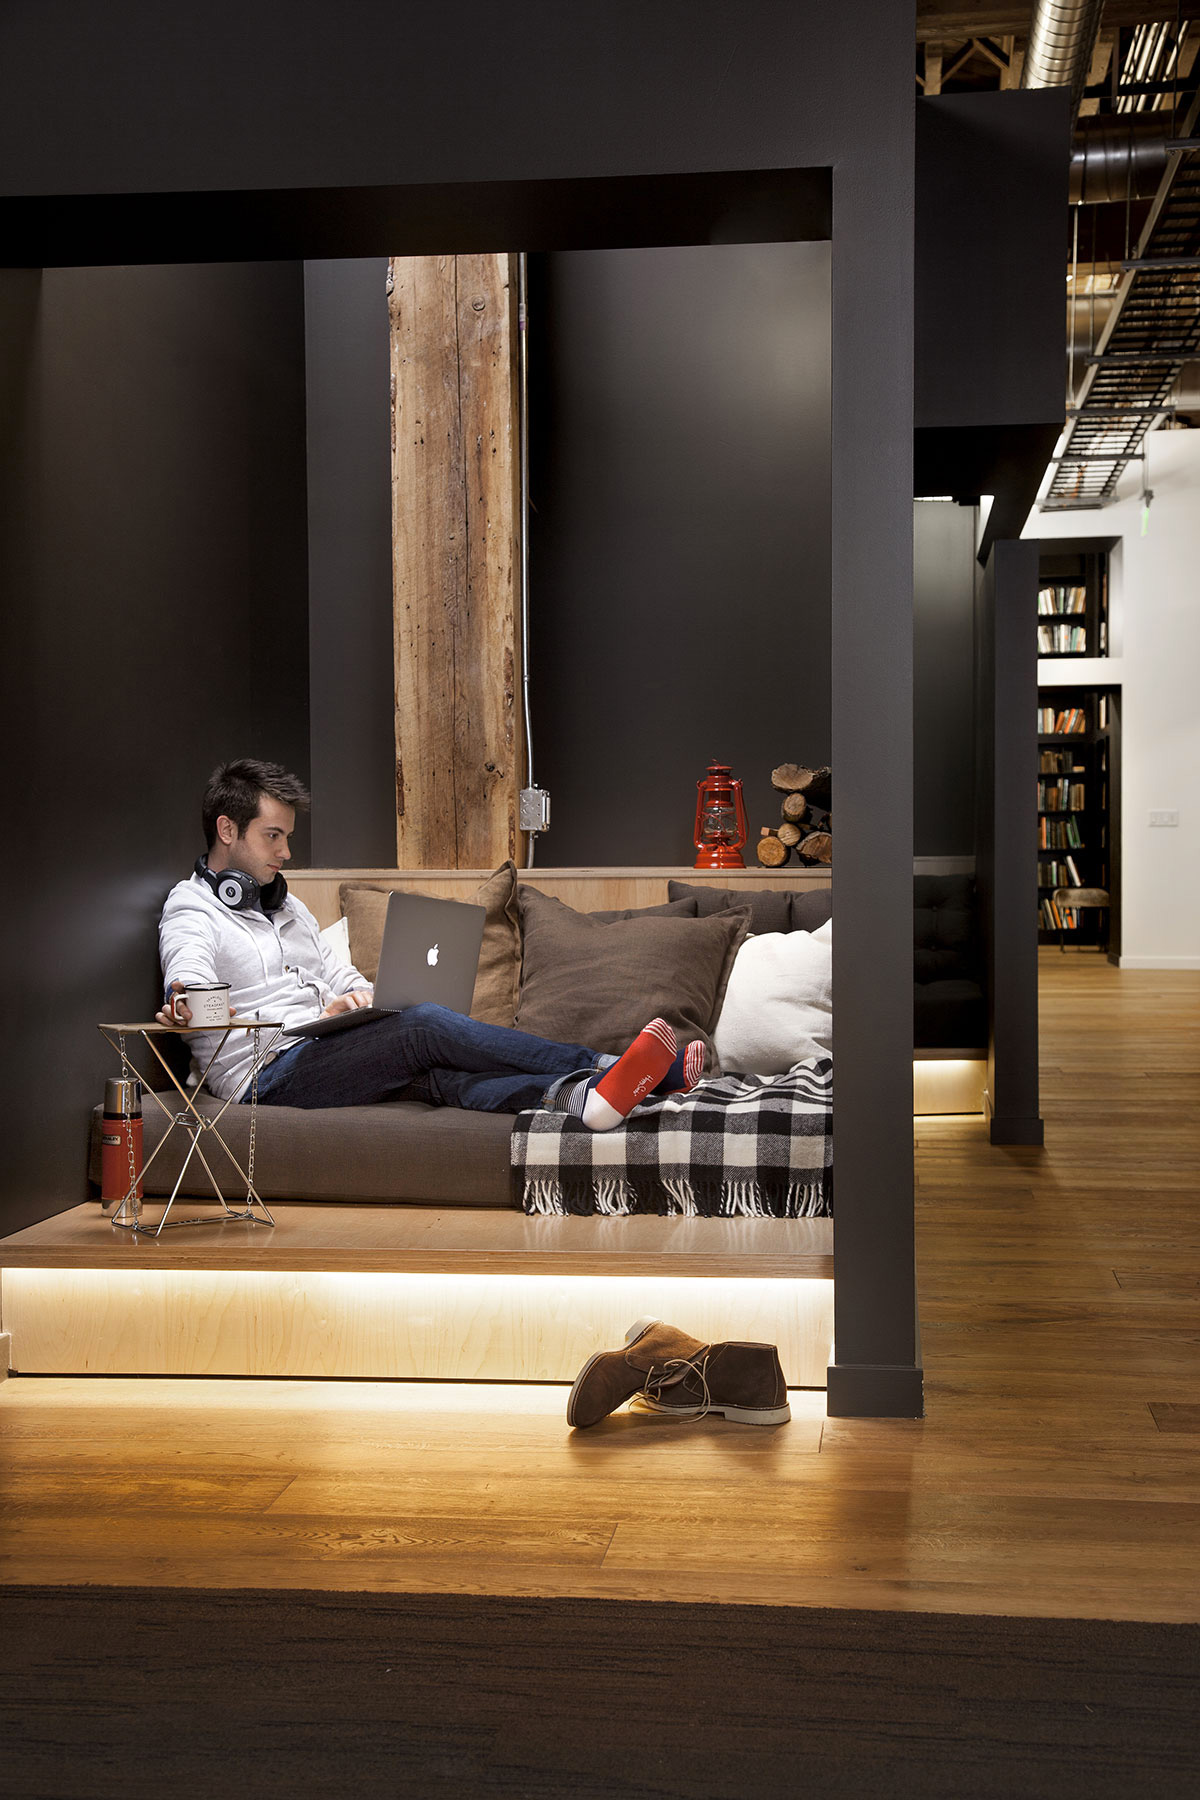 Nook at Github HQ with couch and pillows